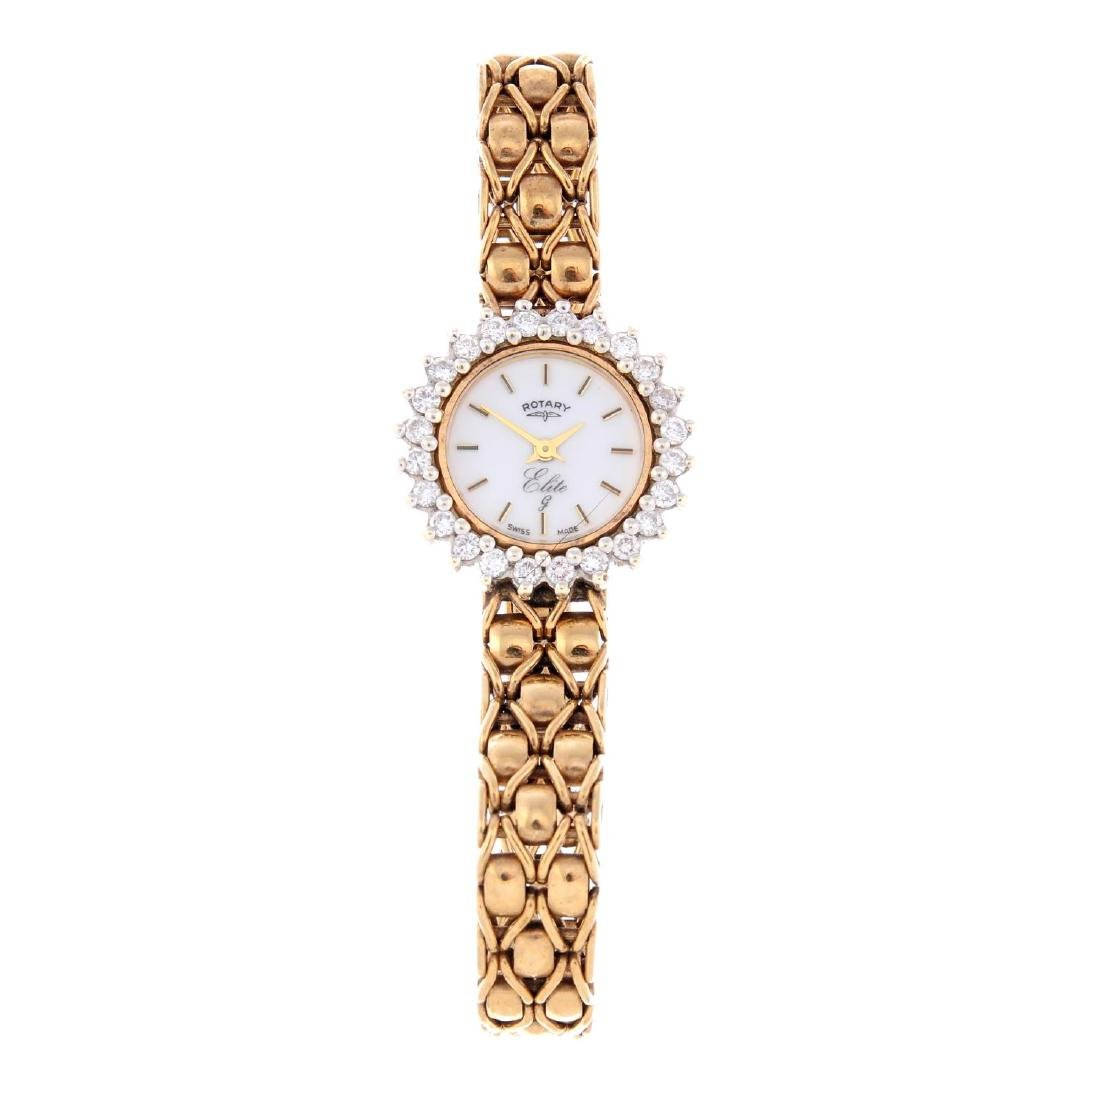 ROTARY - a lady's Elite bracelet watch. 9ct yellow gold